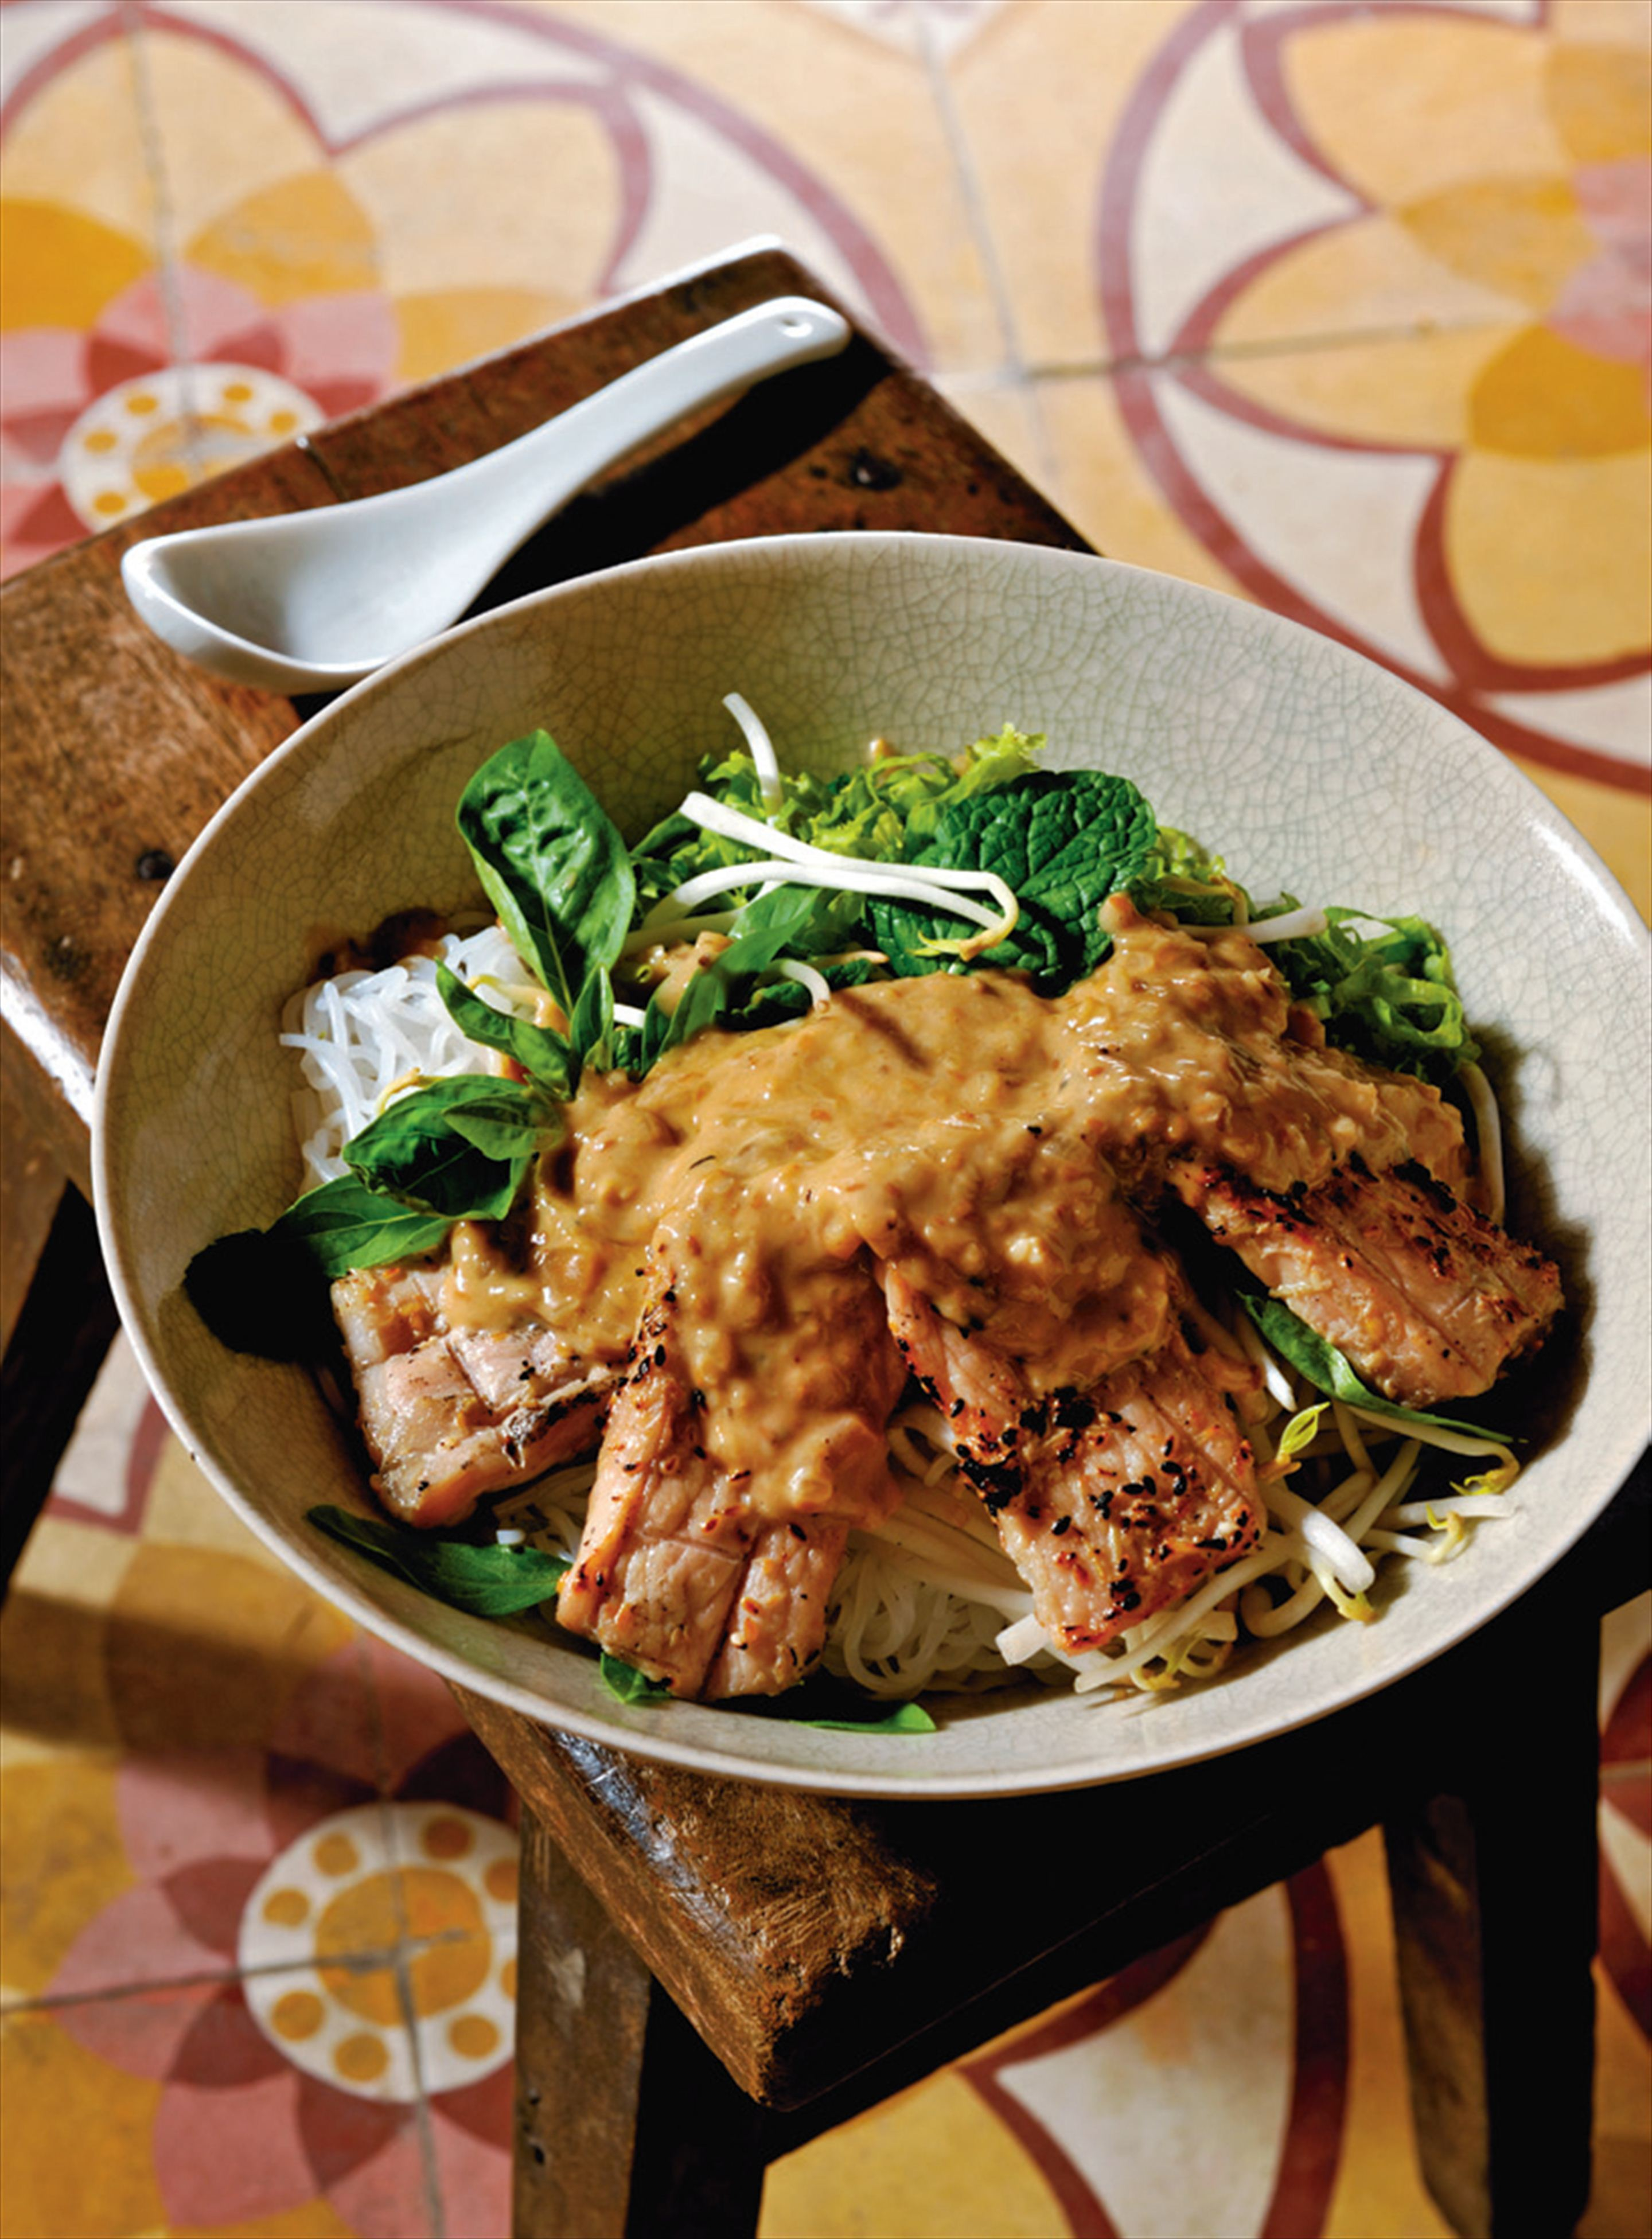 Barbecued lemongrass-marinated pork with rice vermicelli